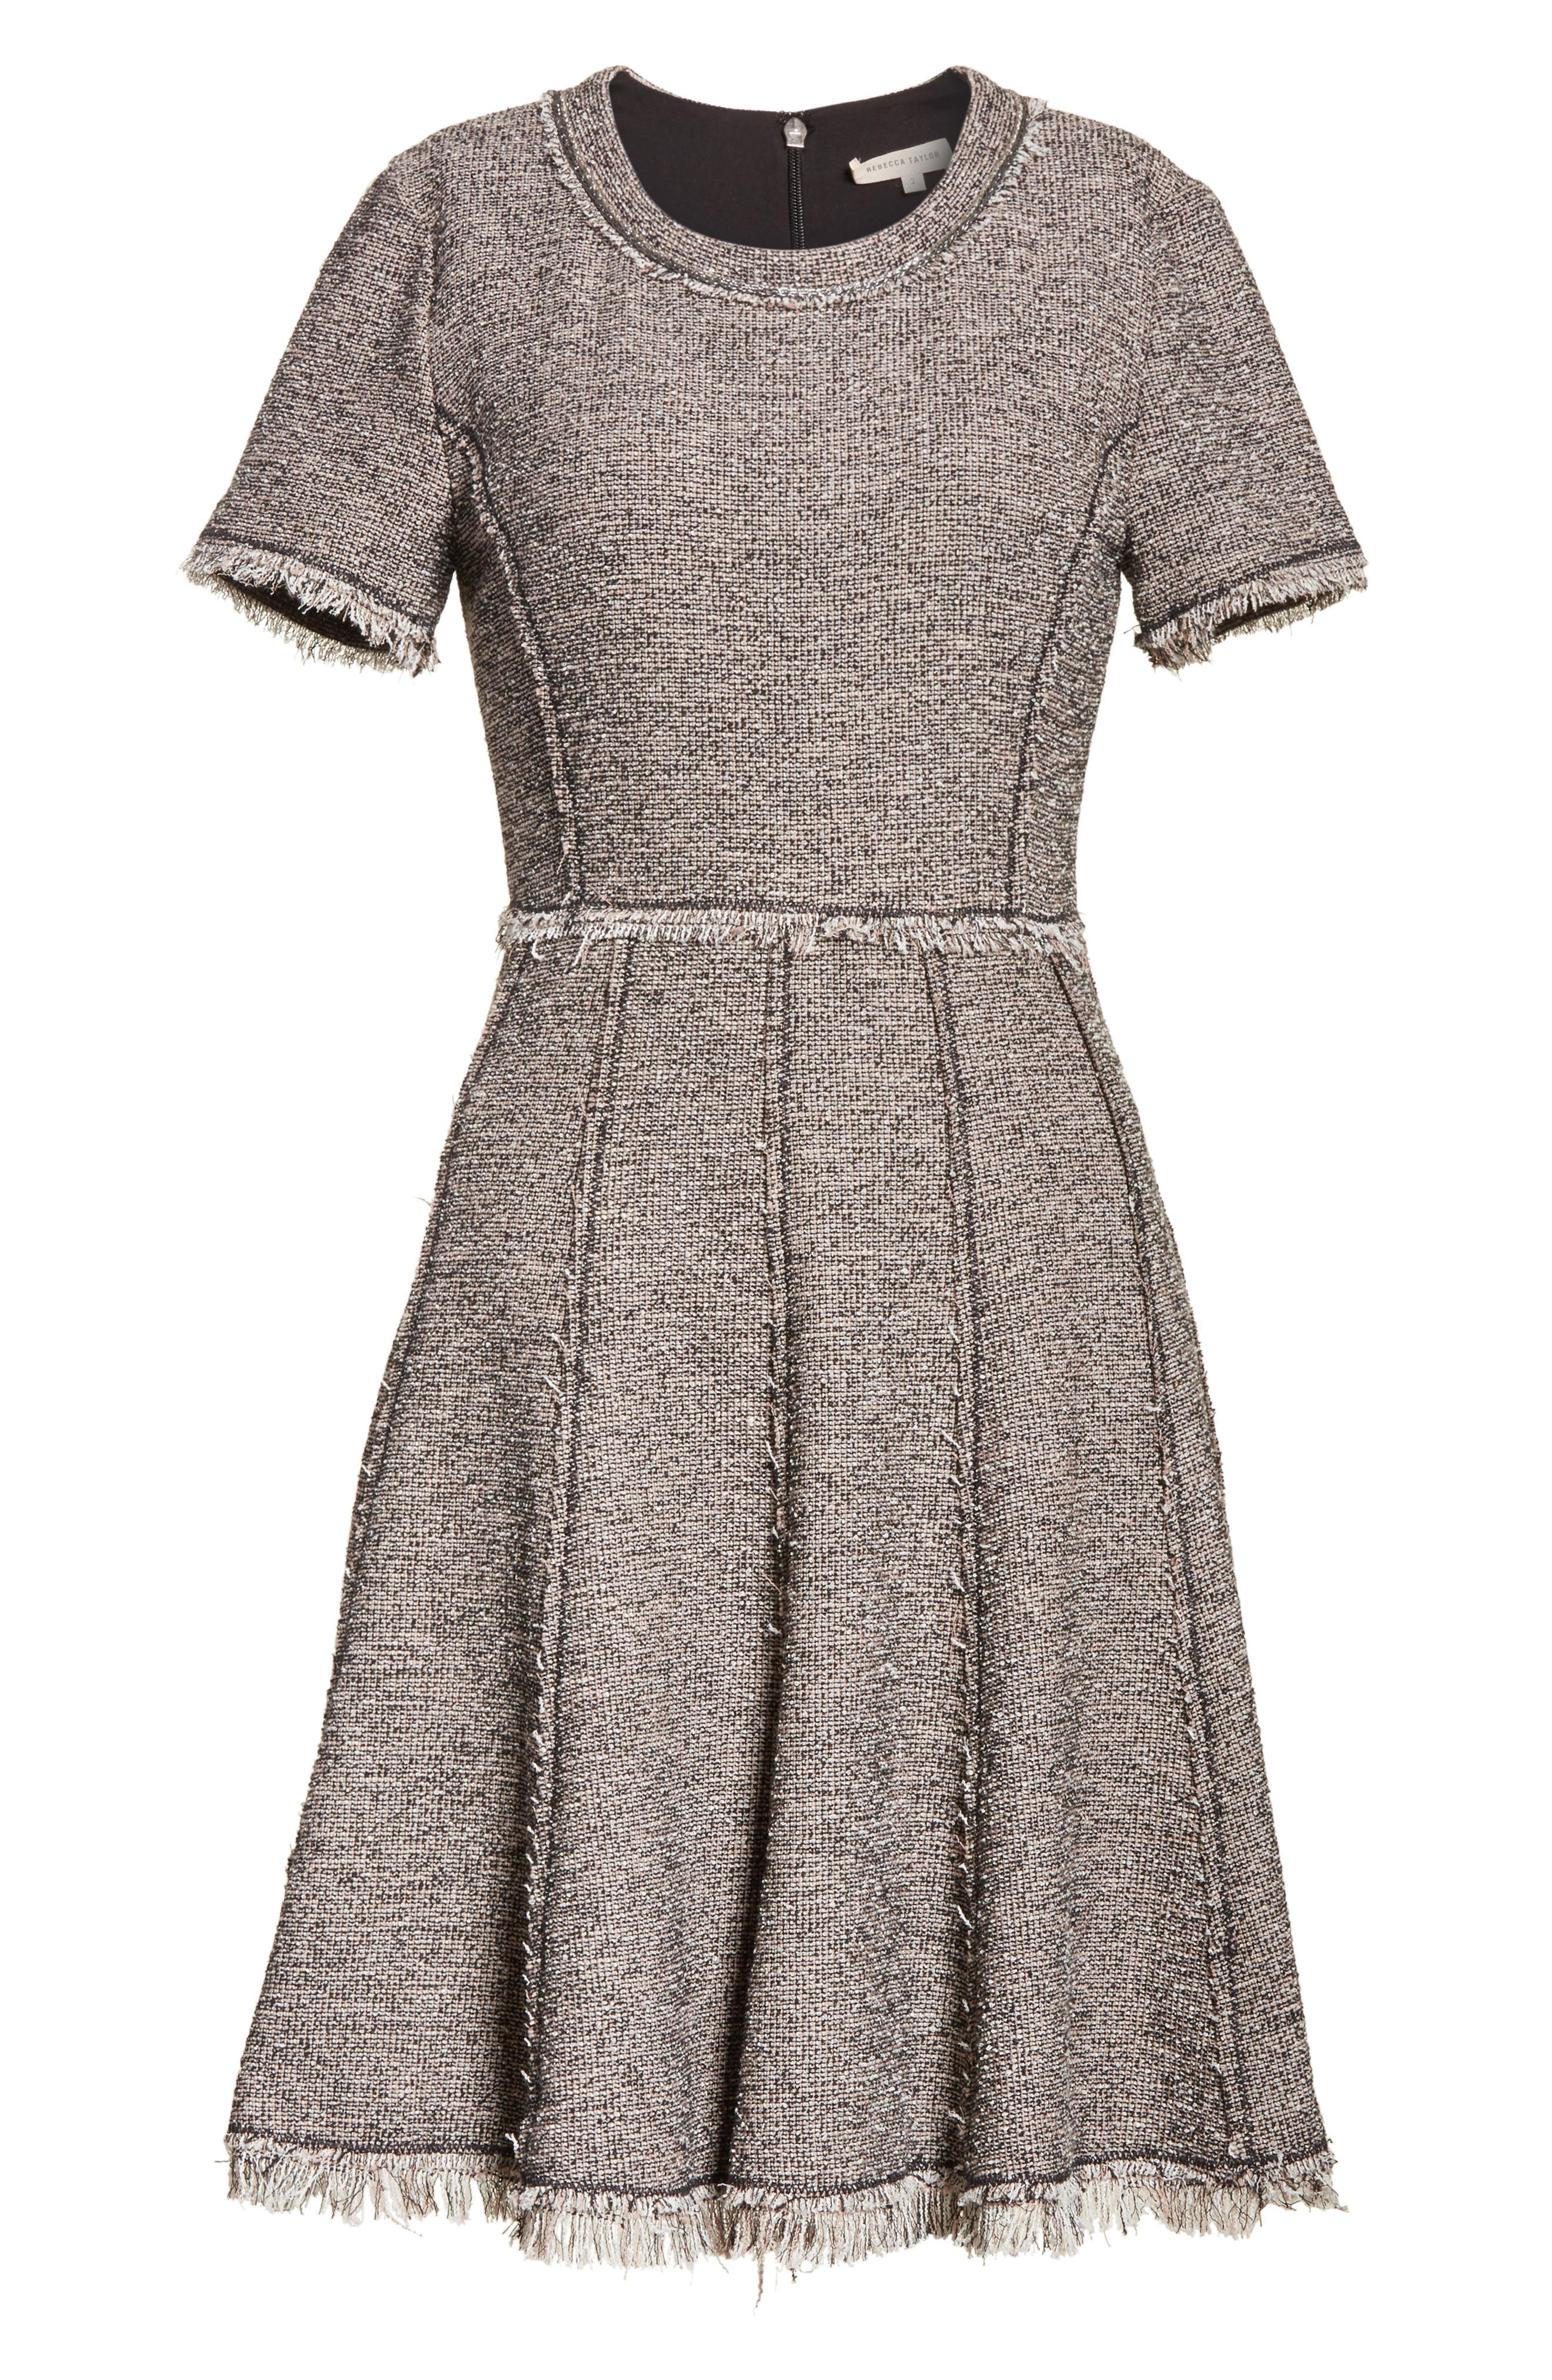 Stretch Tweed Dress,                             Alternate thumbnail 6, color,                             256